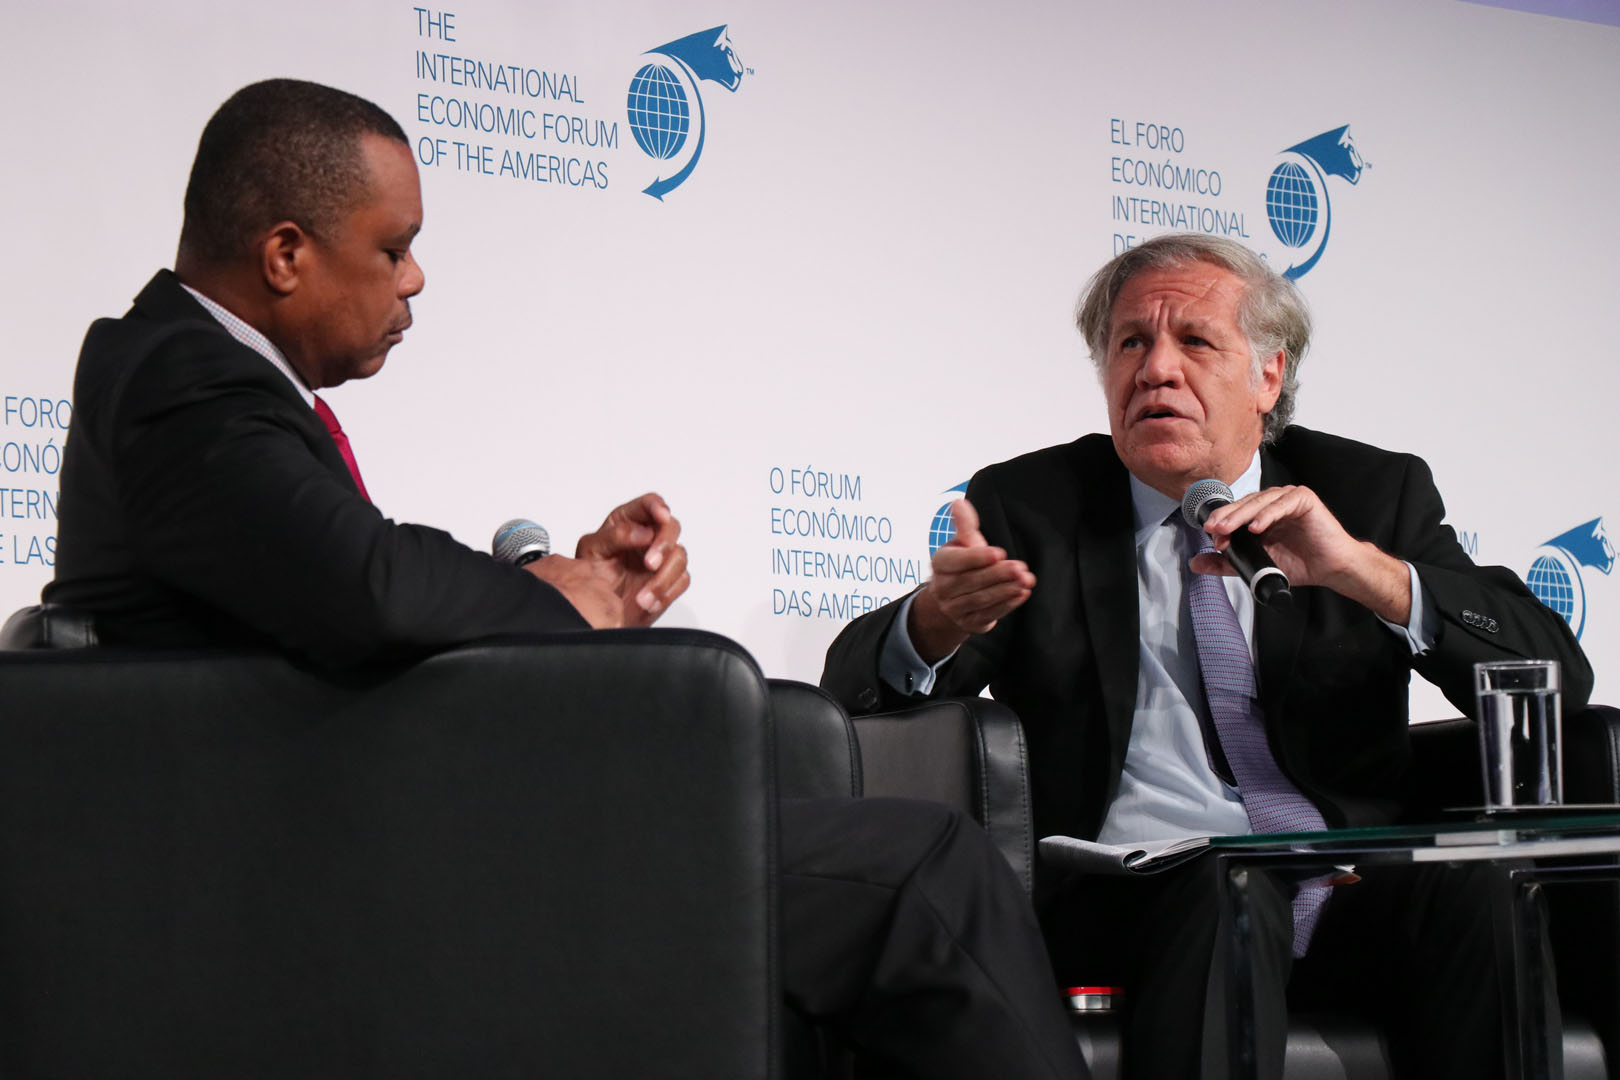 Luis Almagro Lemes, Secretary General, Organization of American States (OAS) and John Yearwood, Executive Board, International Press Institute; and former World Editor, Miami Herald